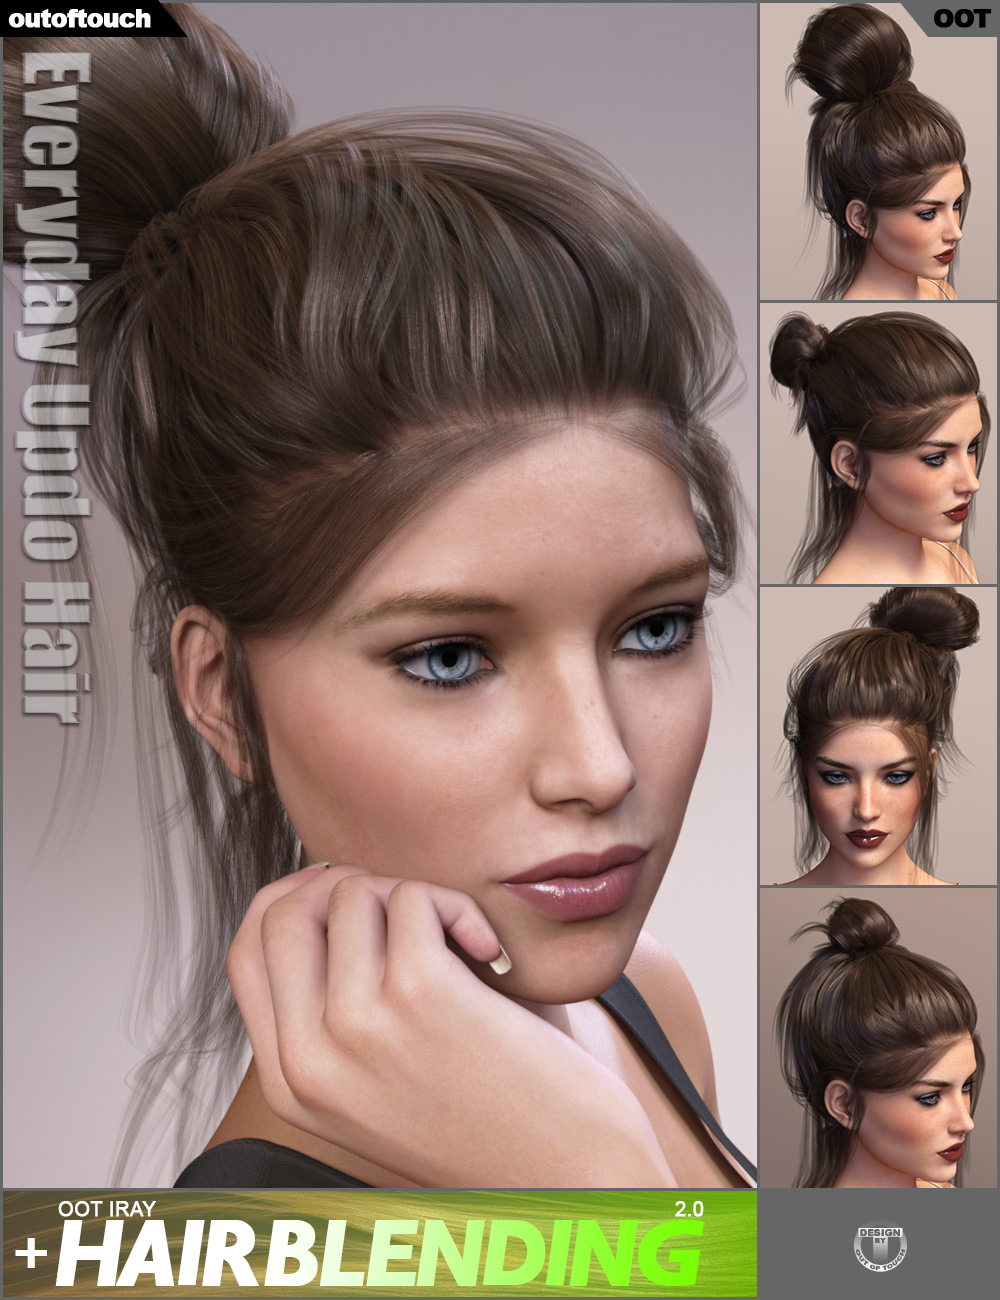 Everyday Updo Hair and OOT Hairblending 2.0 for Genesis 3 Female(s) by: outoftouch, 3D Models by Daz 3D